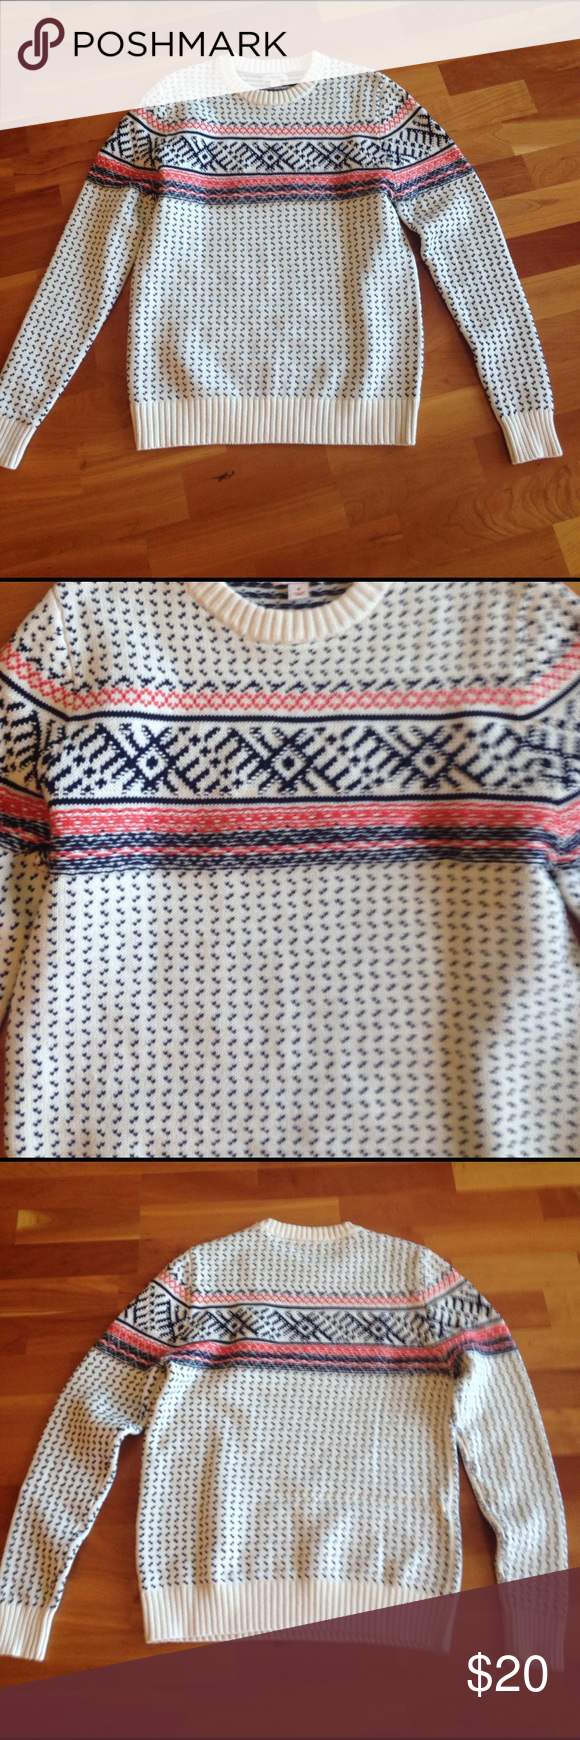 Merona sweater Very cute and comfortable cotton Nordic style sweater size small brand-new without tags's super preppy and cute orange blue and cream Sweaters Crew & Scoop Necks